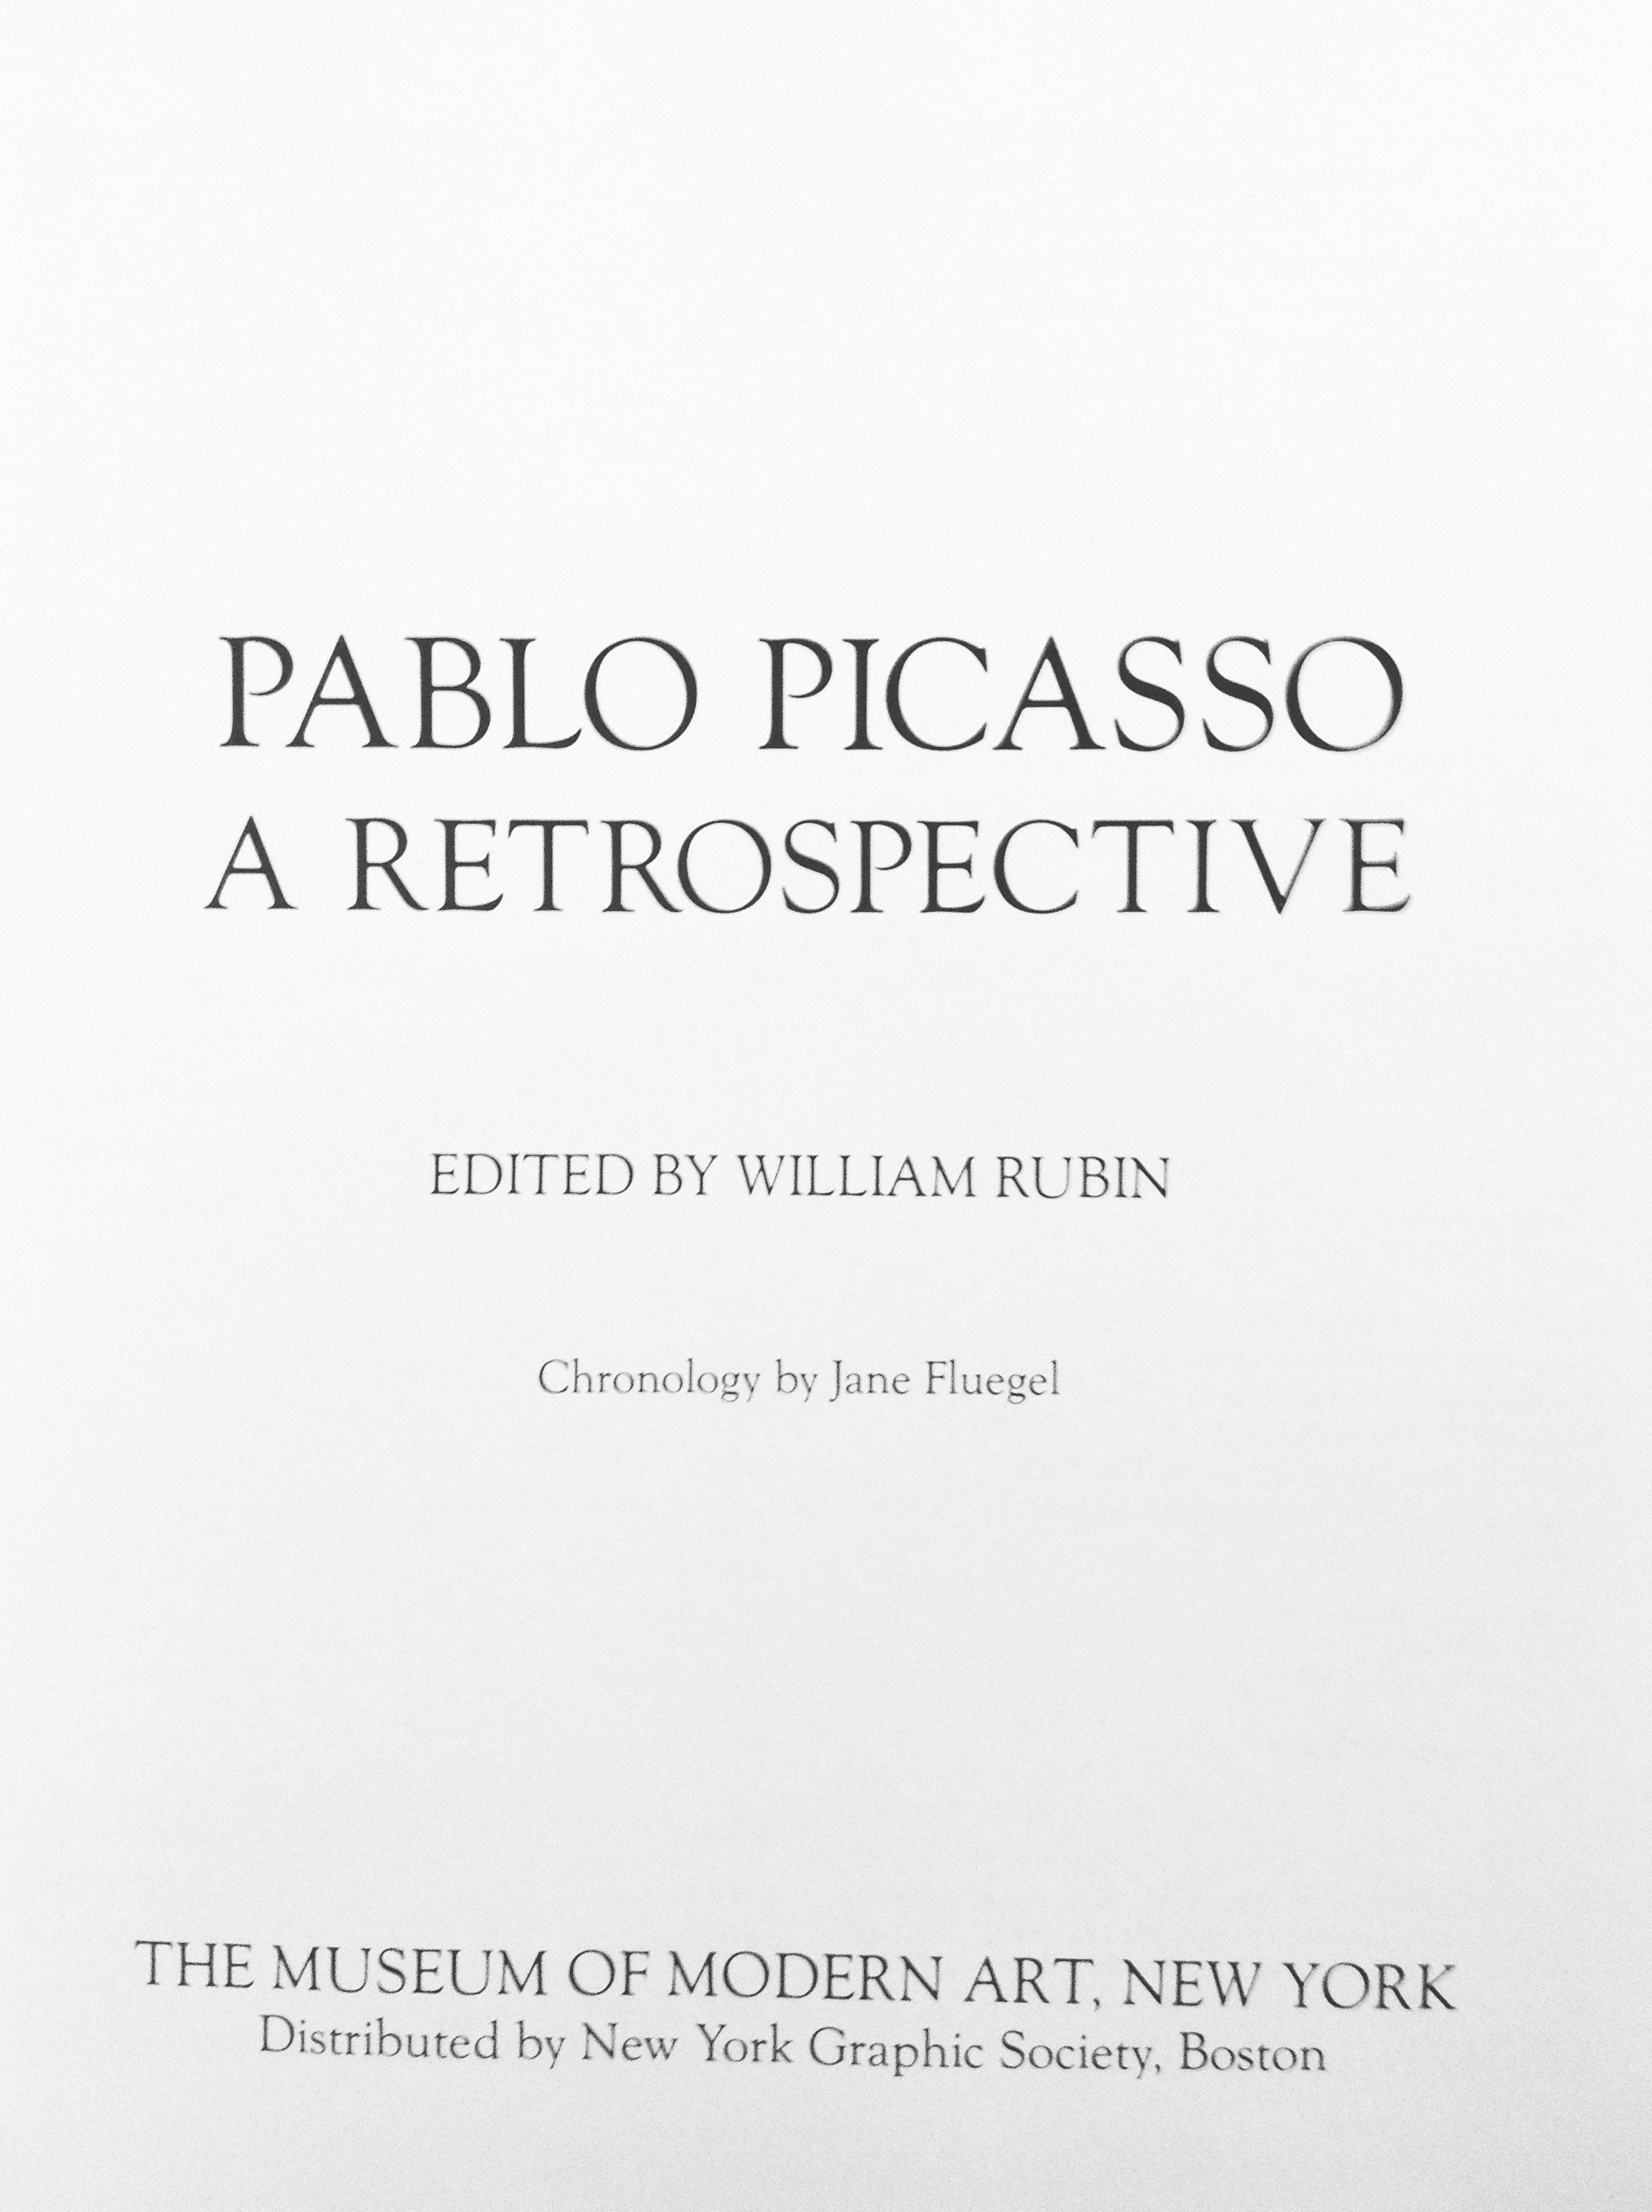 Picasso+Retrospective+MOMA+William+Rubin+Jane+Fluegel.jpg